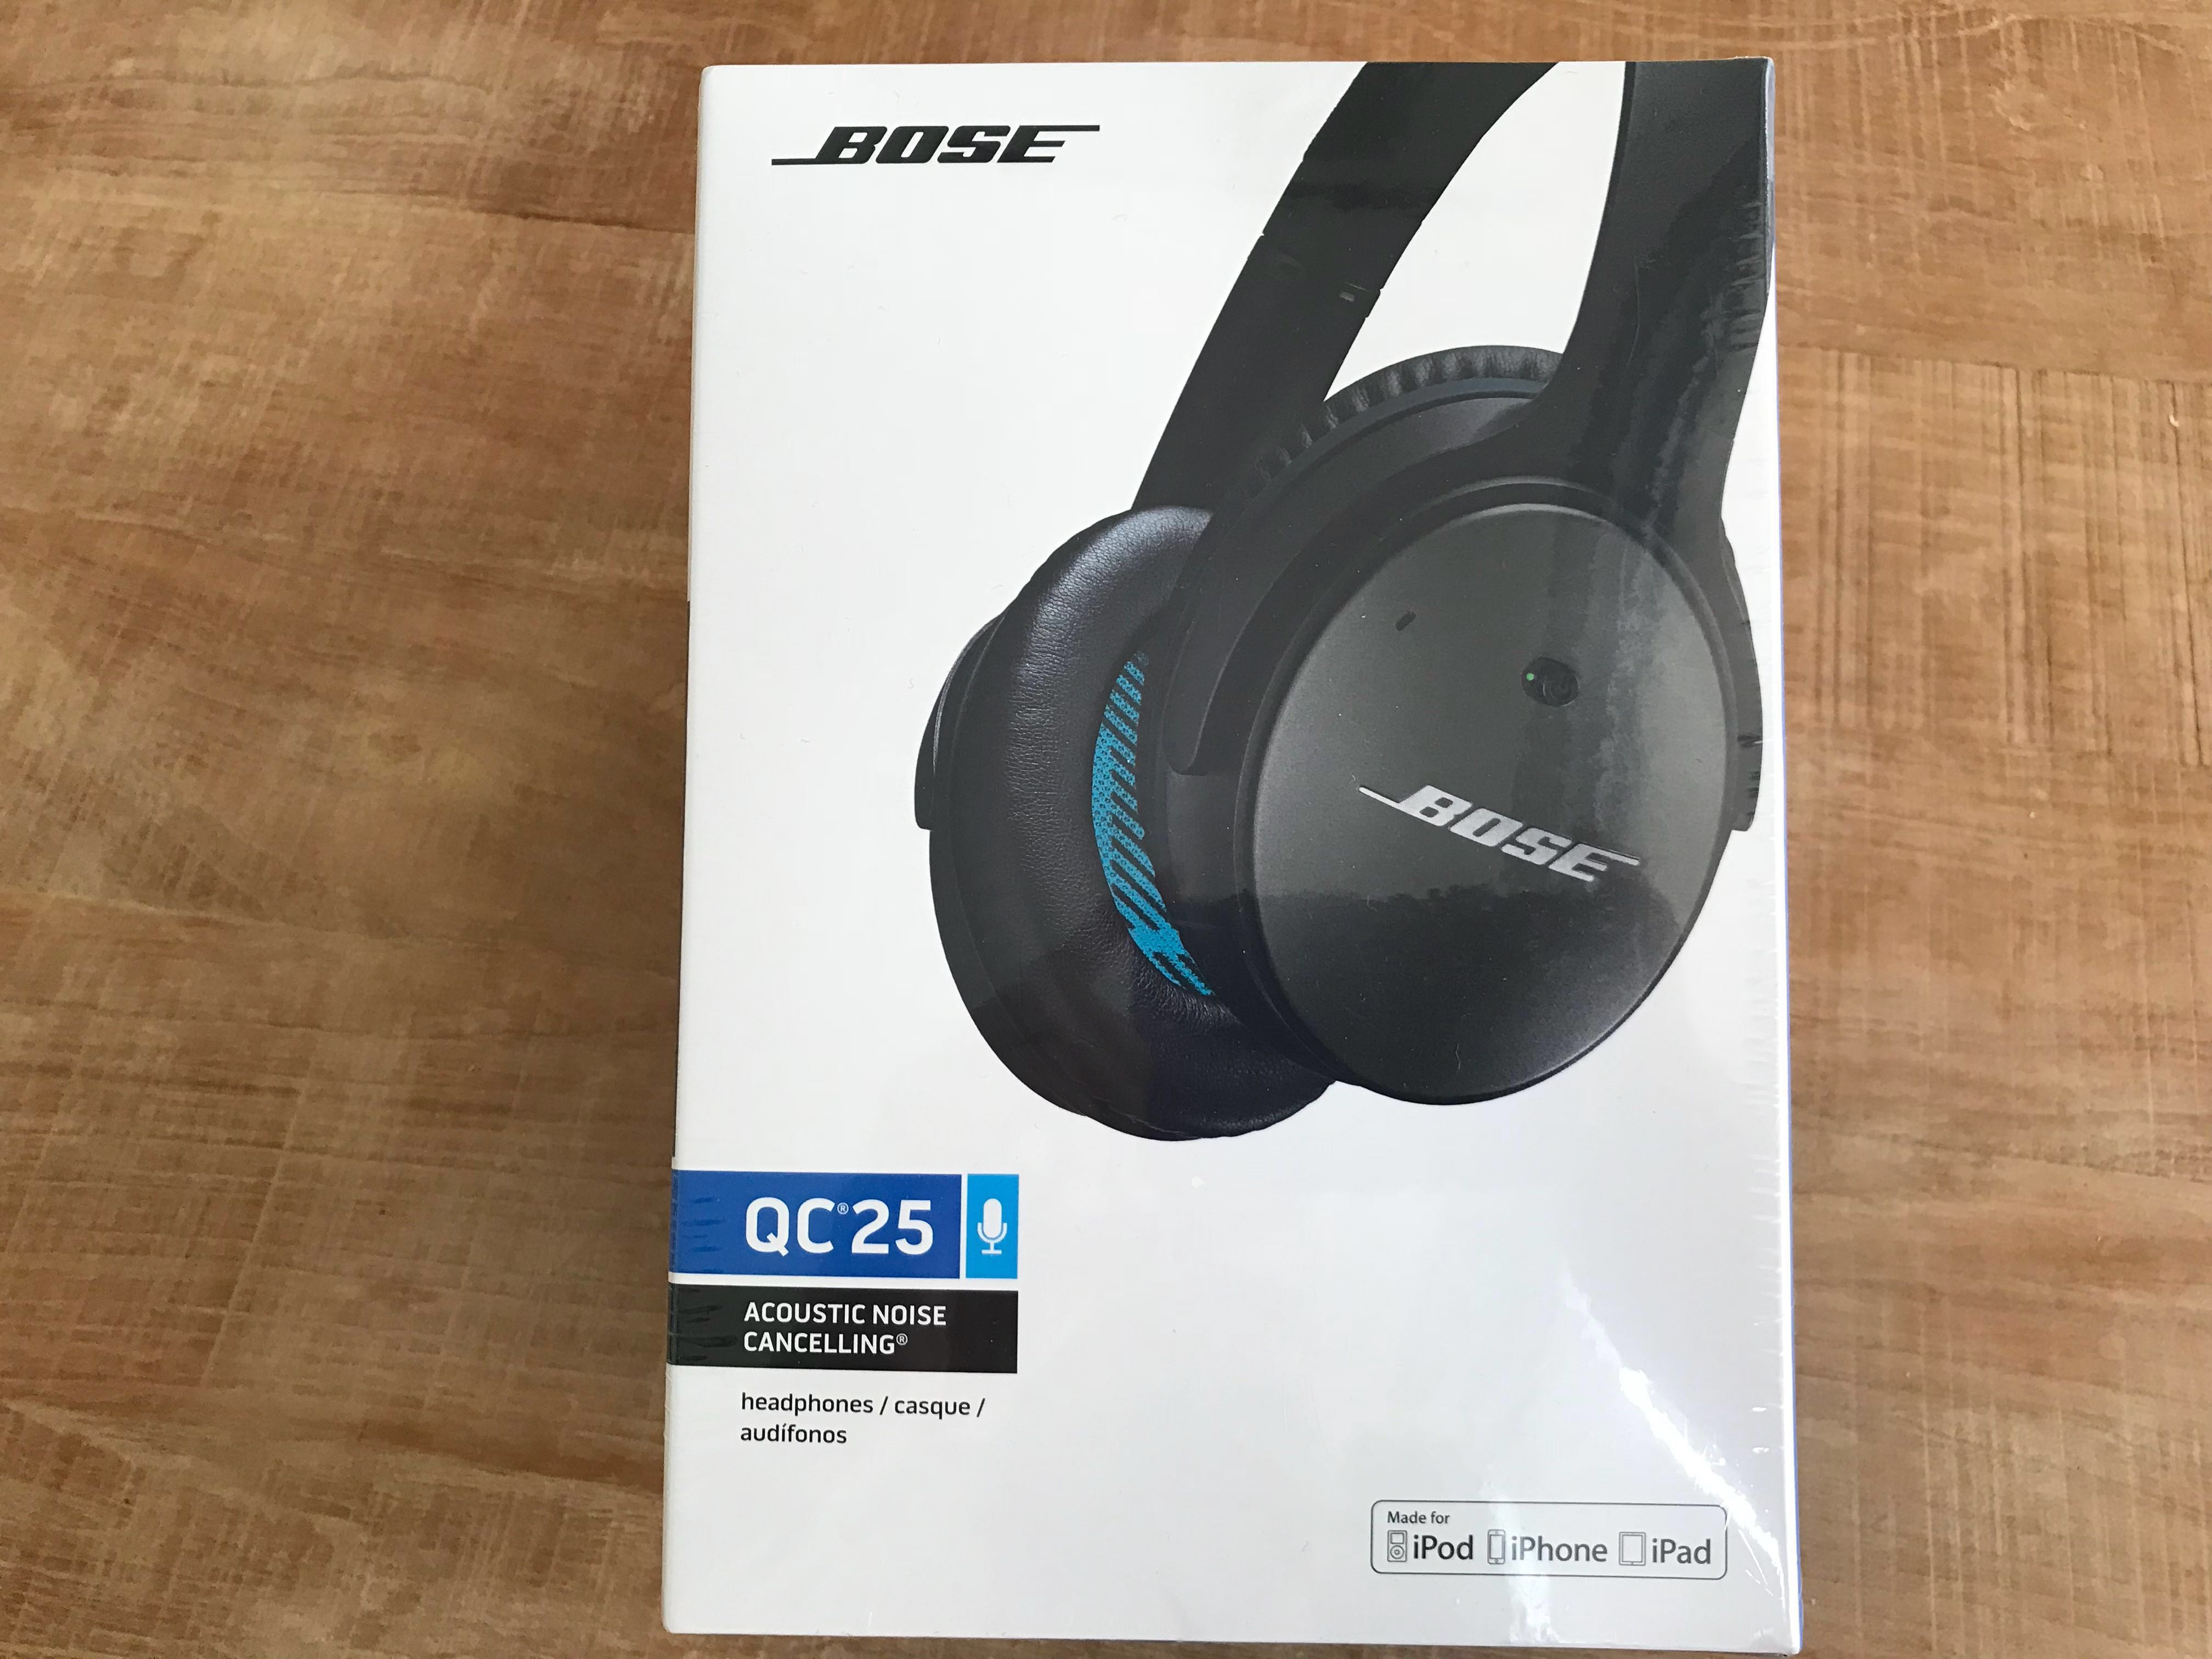 e09240e179b Bose QC25 for Apple and iOS, Electronics, Audio on Carousell